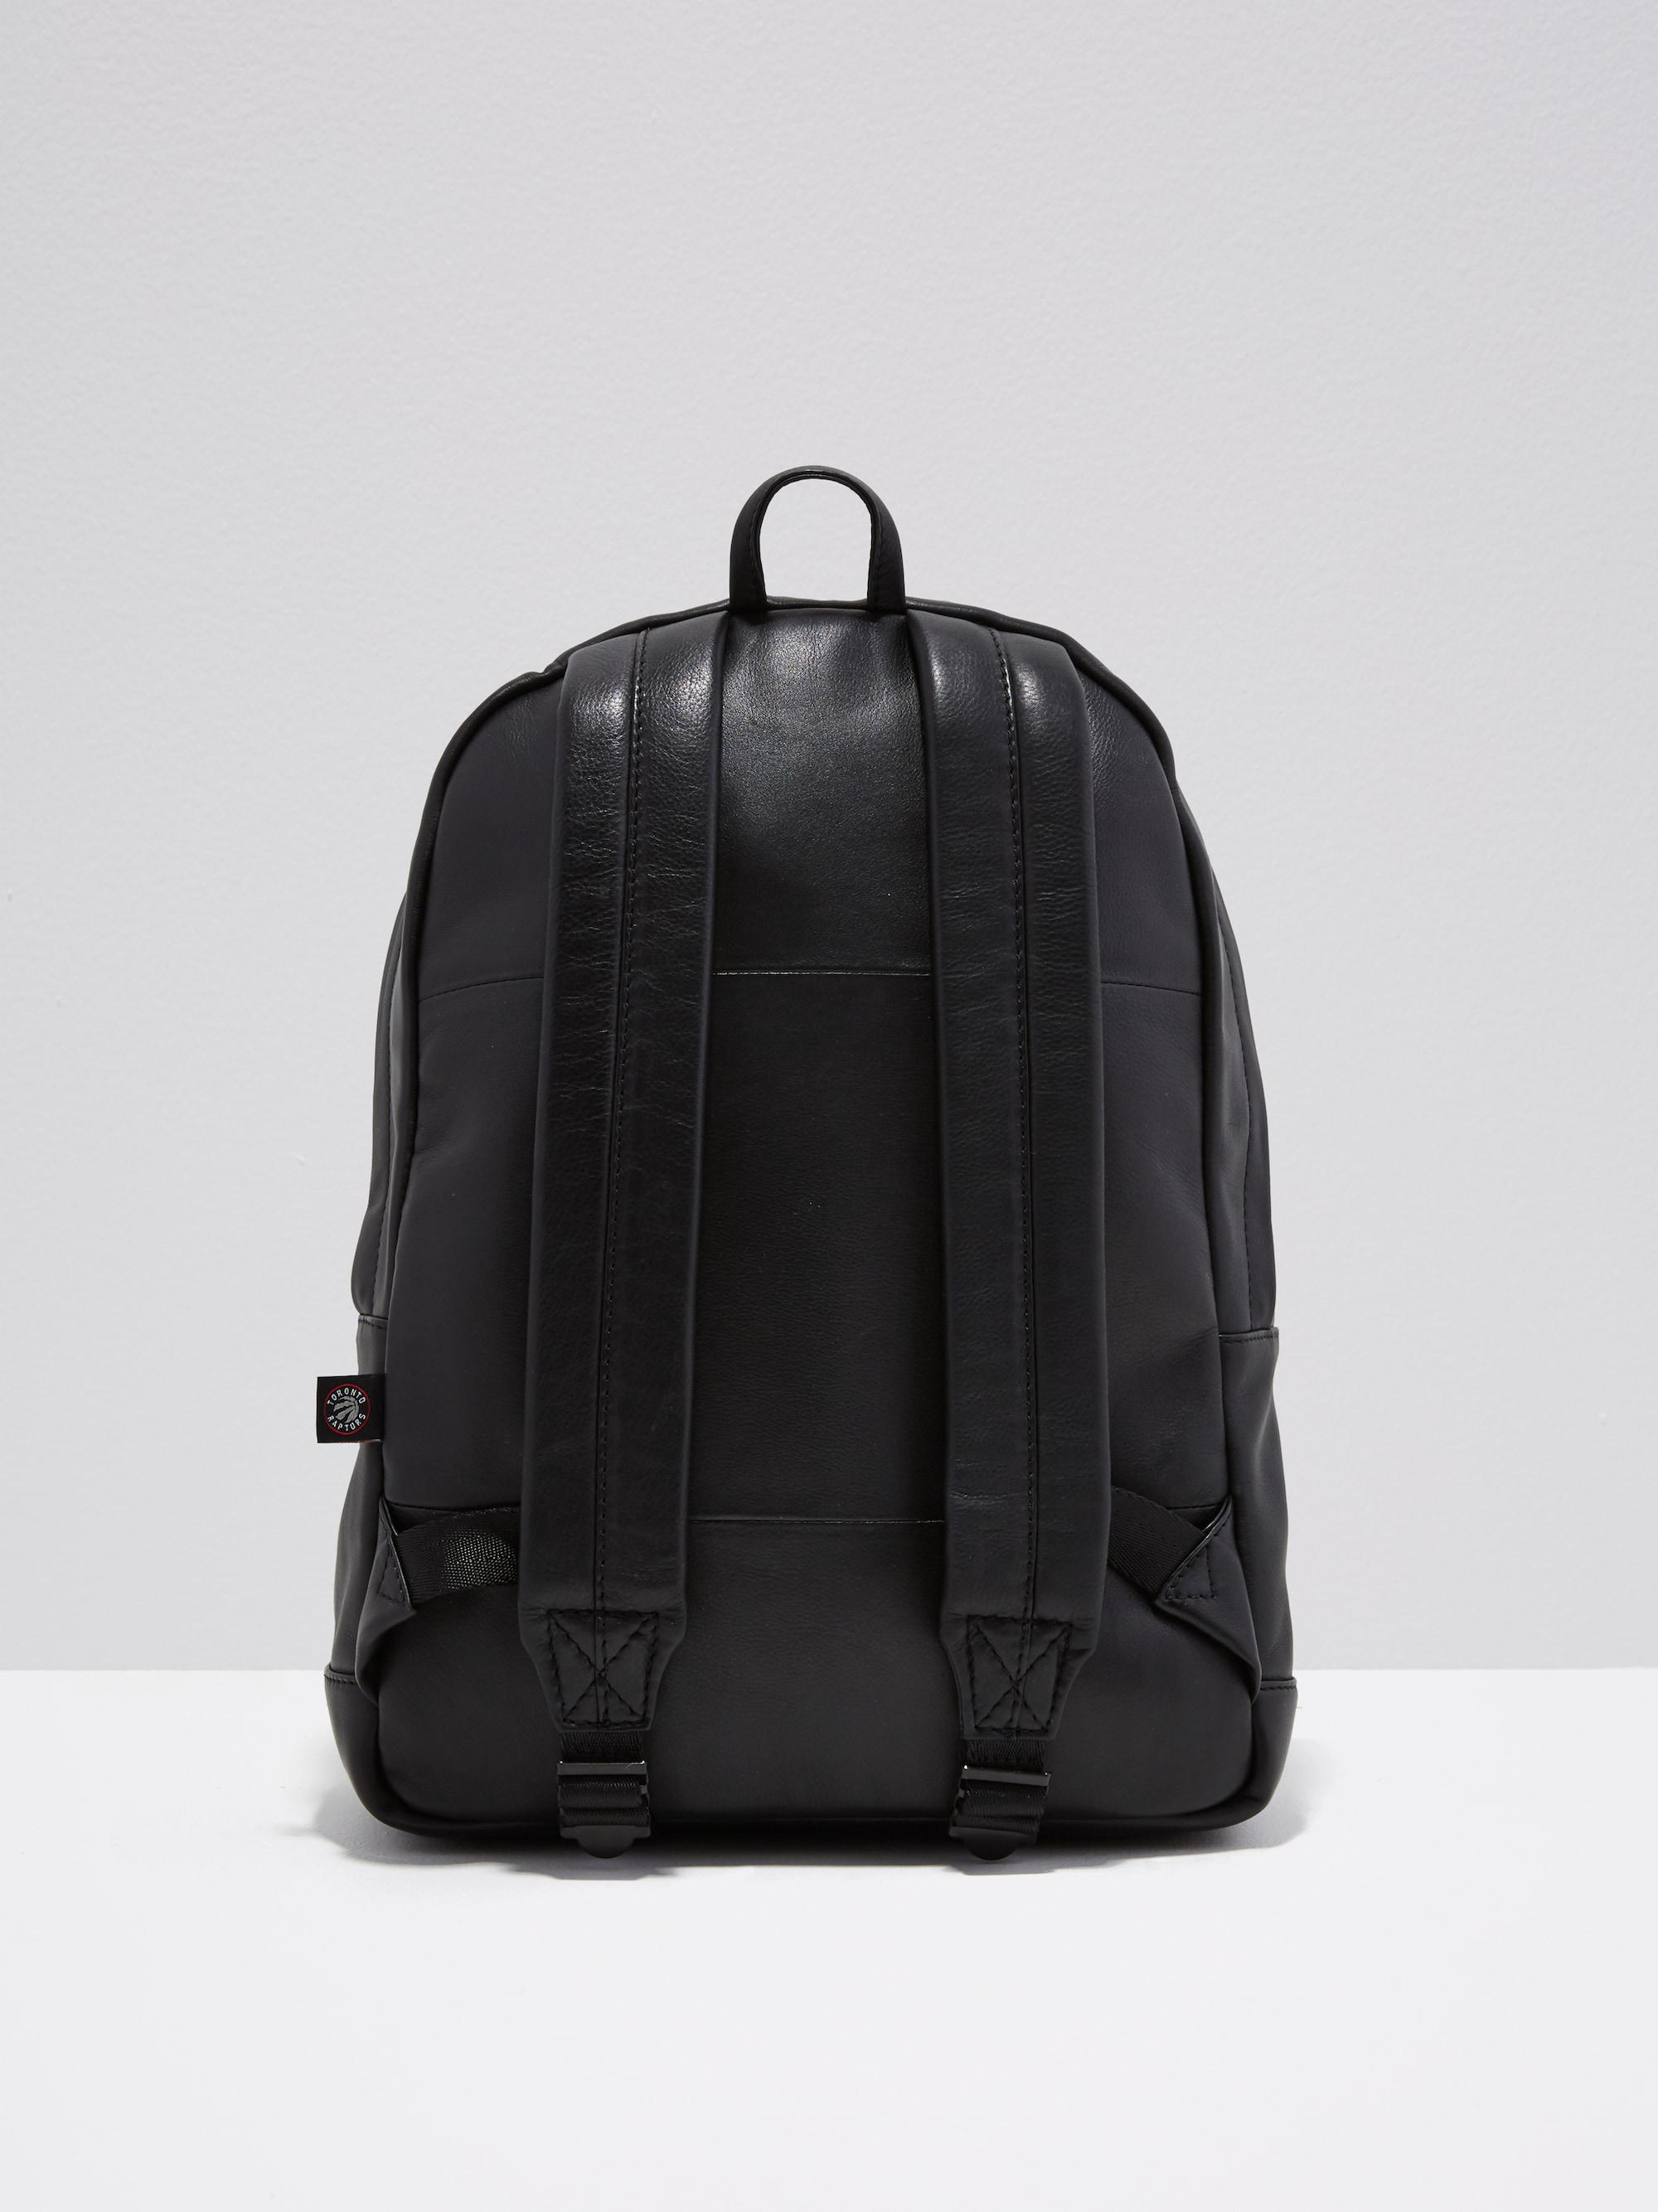 BuyJohn Lewis   Partners Toronto Leather Backpack 4f8851a54d352